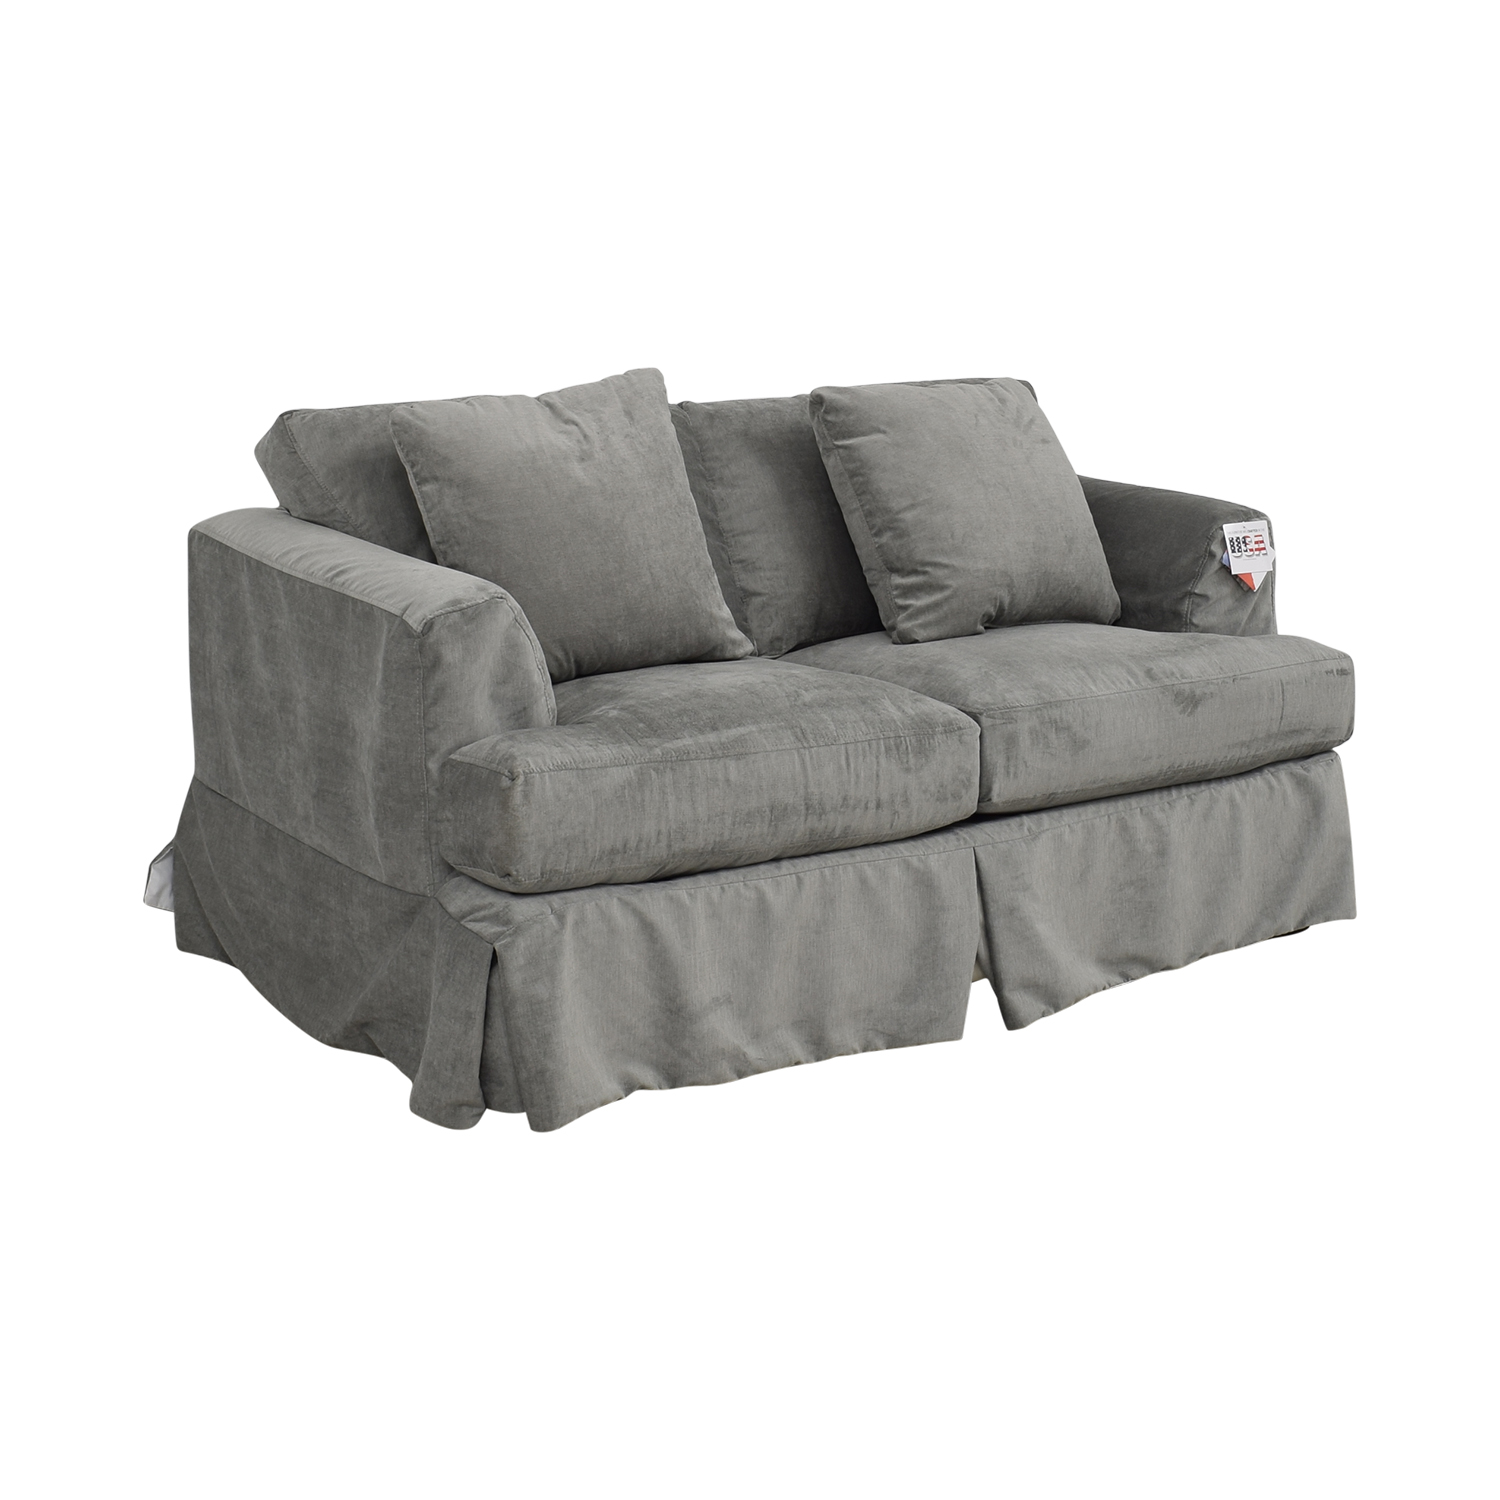 Wayfair Grey Upholstered Two-Cushion Loveseat sale